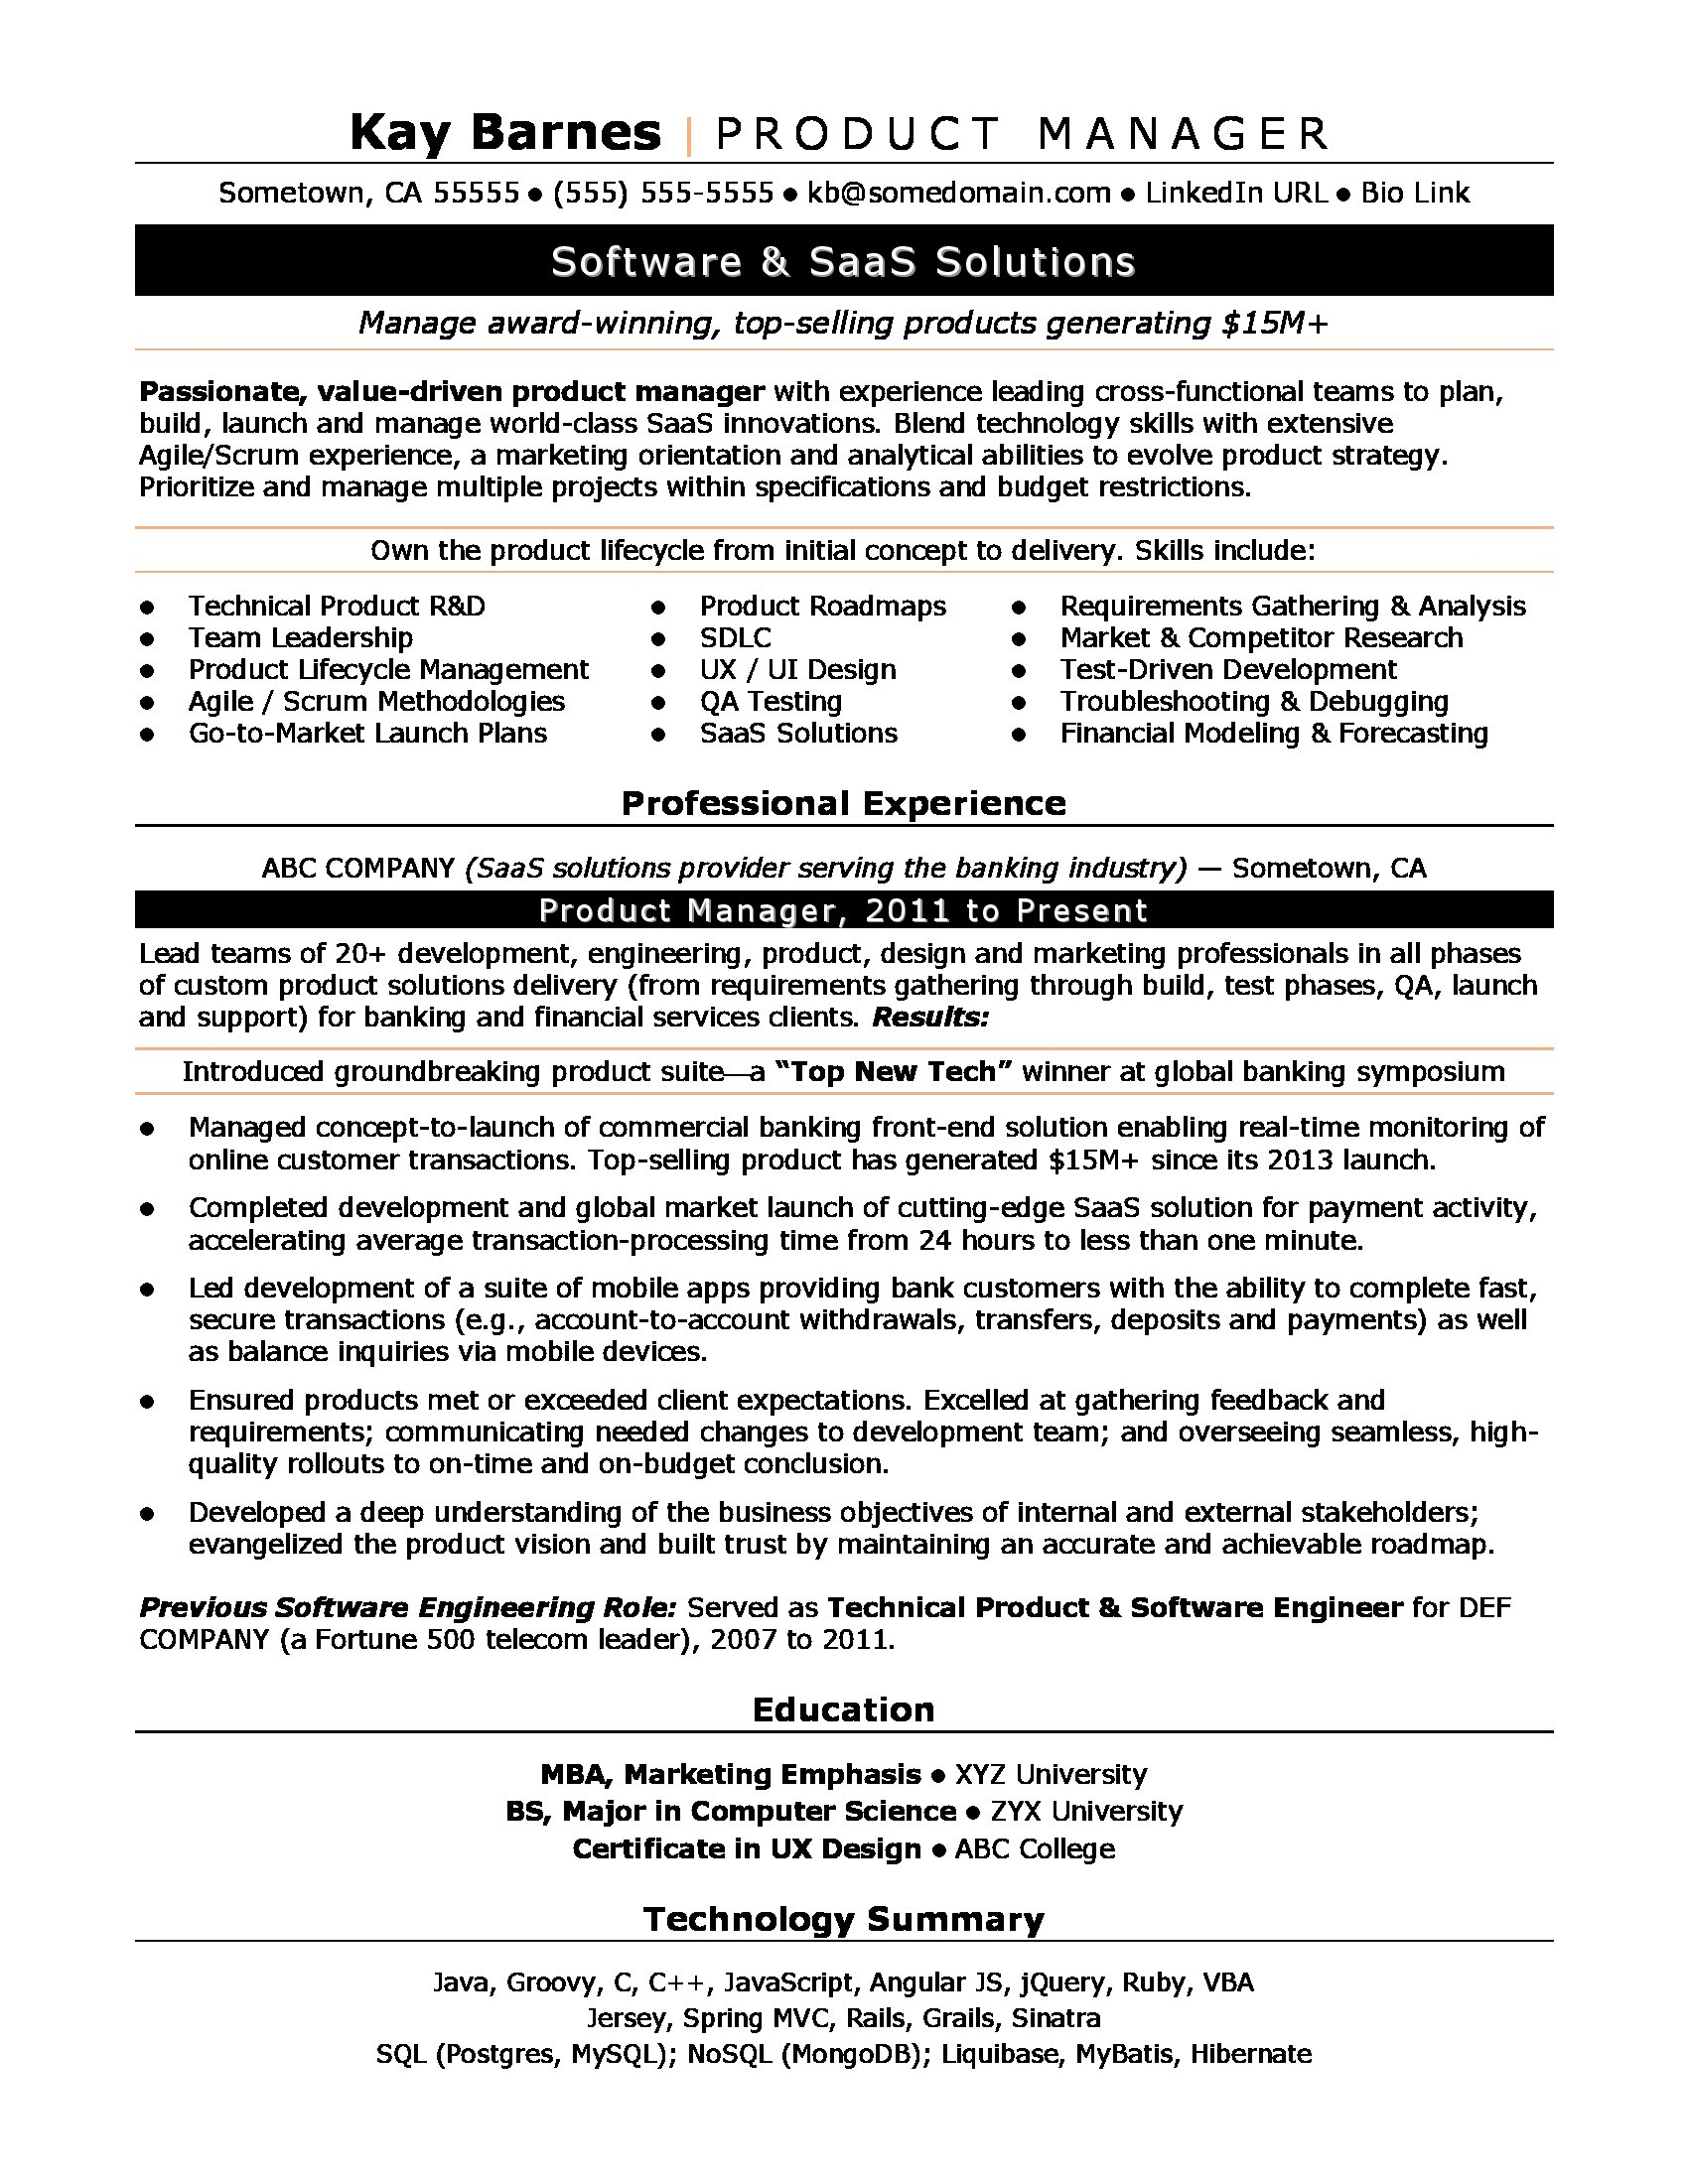 product manager resume sample monster agile productmanager hospitality examples free Resume Agile Product Manager Resume